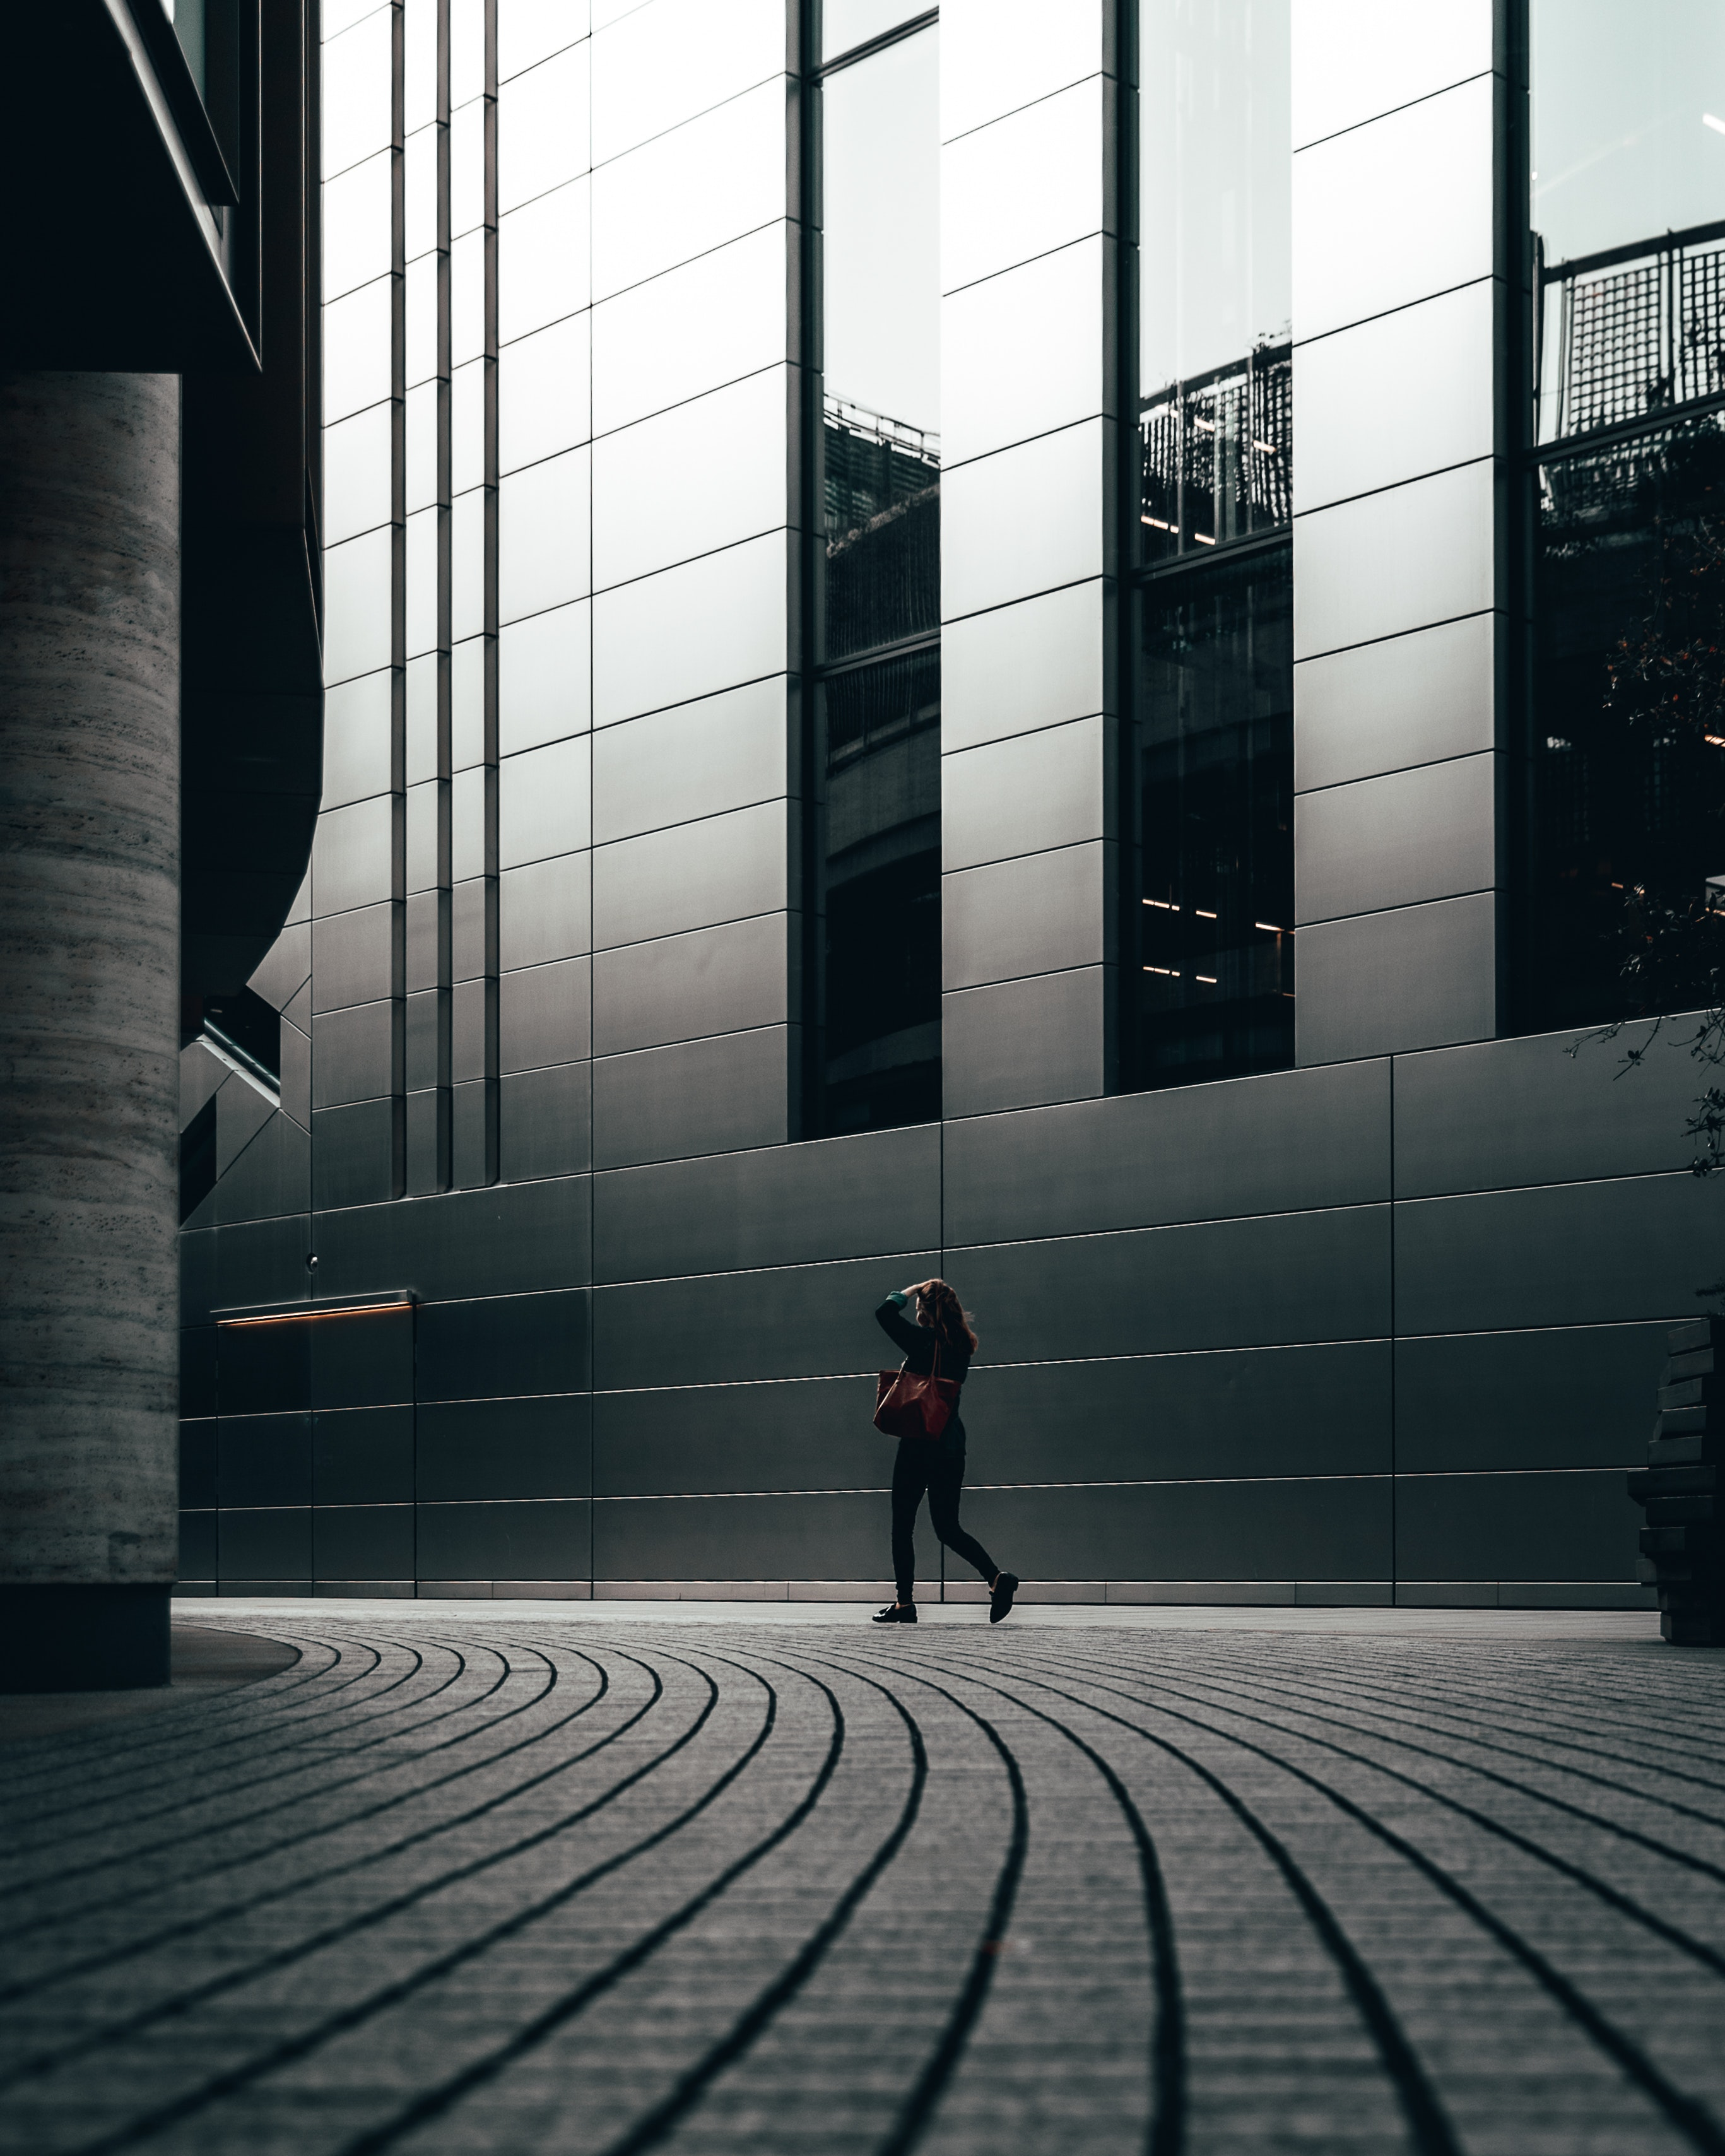 A woman walking beside a building